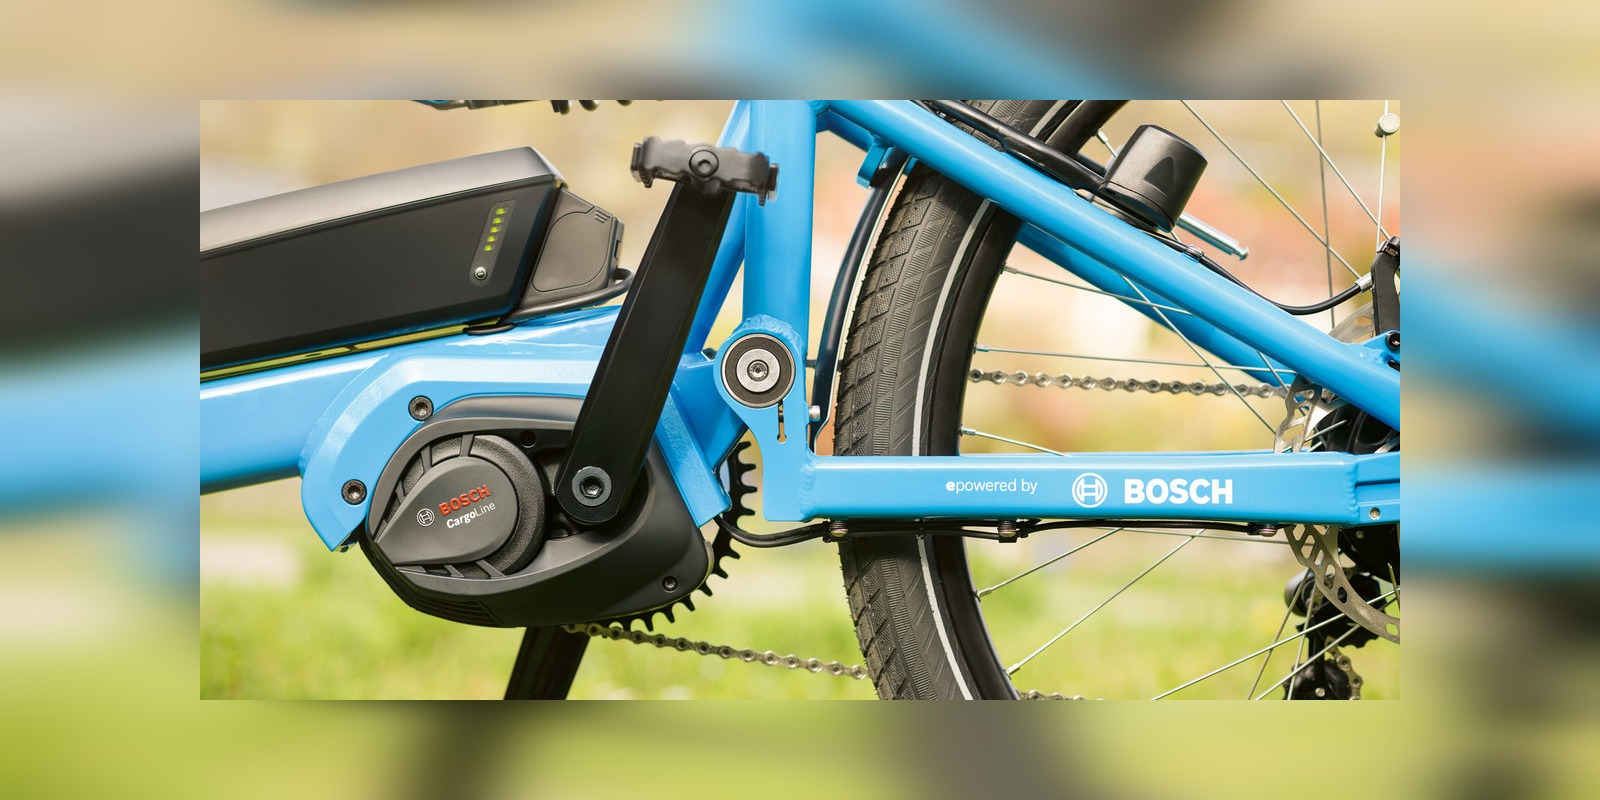 Bosch unveils new 2020 e-bike motors and batteries, but are the